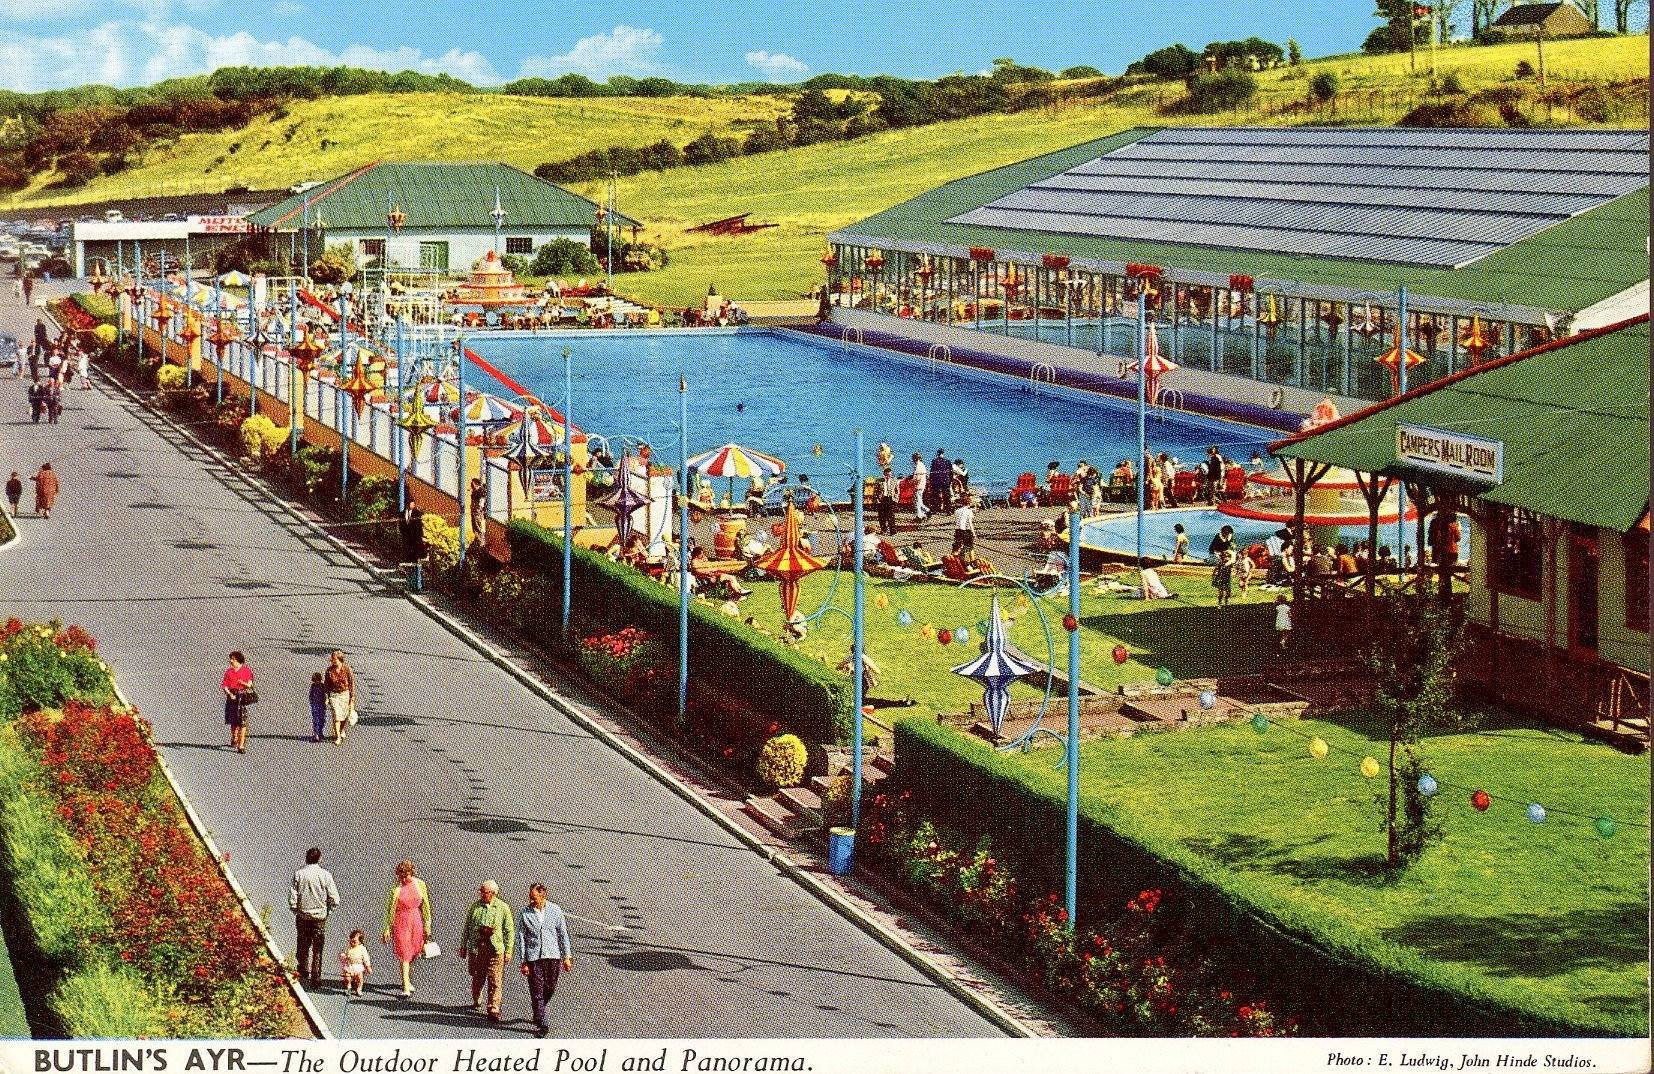 Butlins Ayr - Outdoor Pool